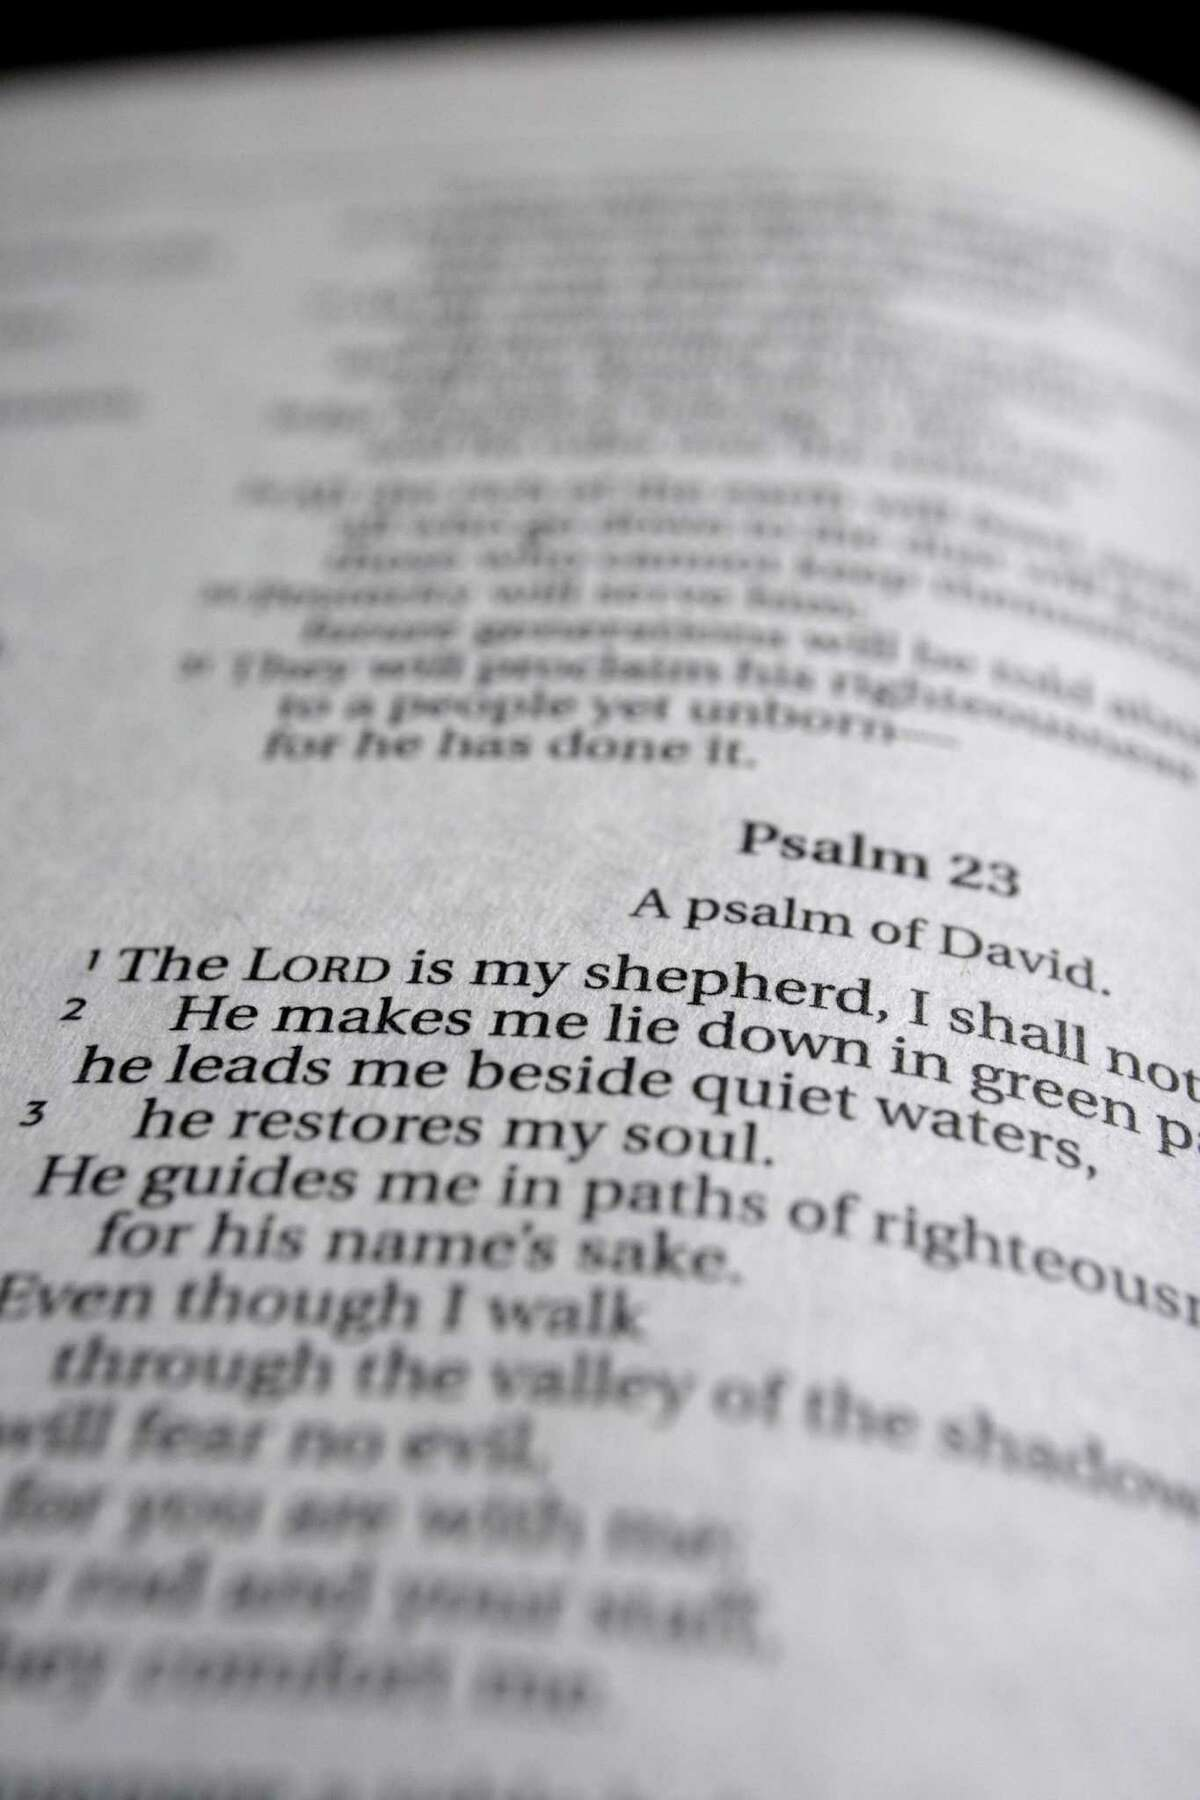 Opening words to the 23rd Psalm.